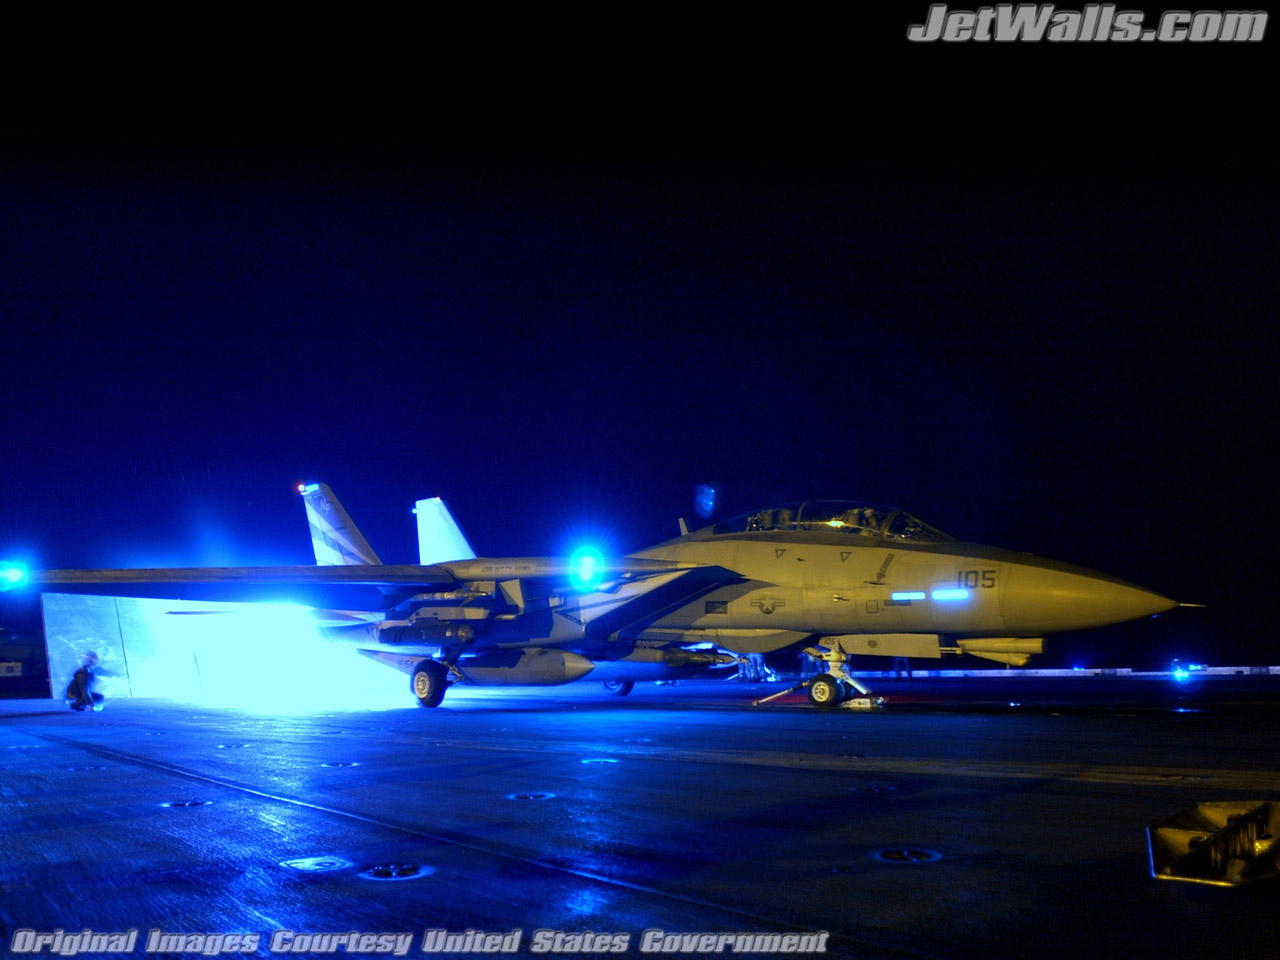 """F-14A Tomcat"" - Wallpaper No. 28 of 101. Right click for saving options."